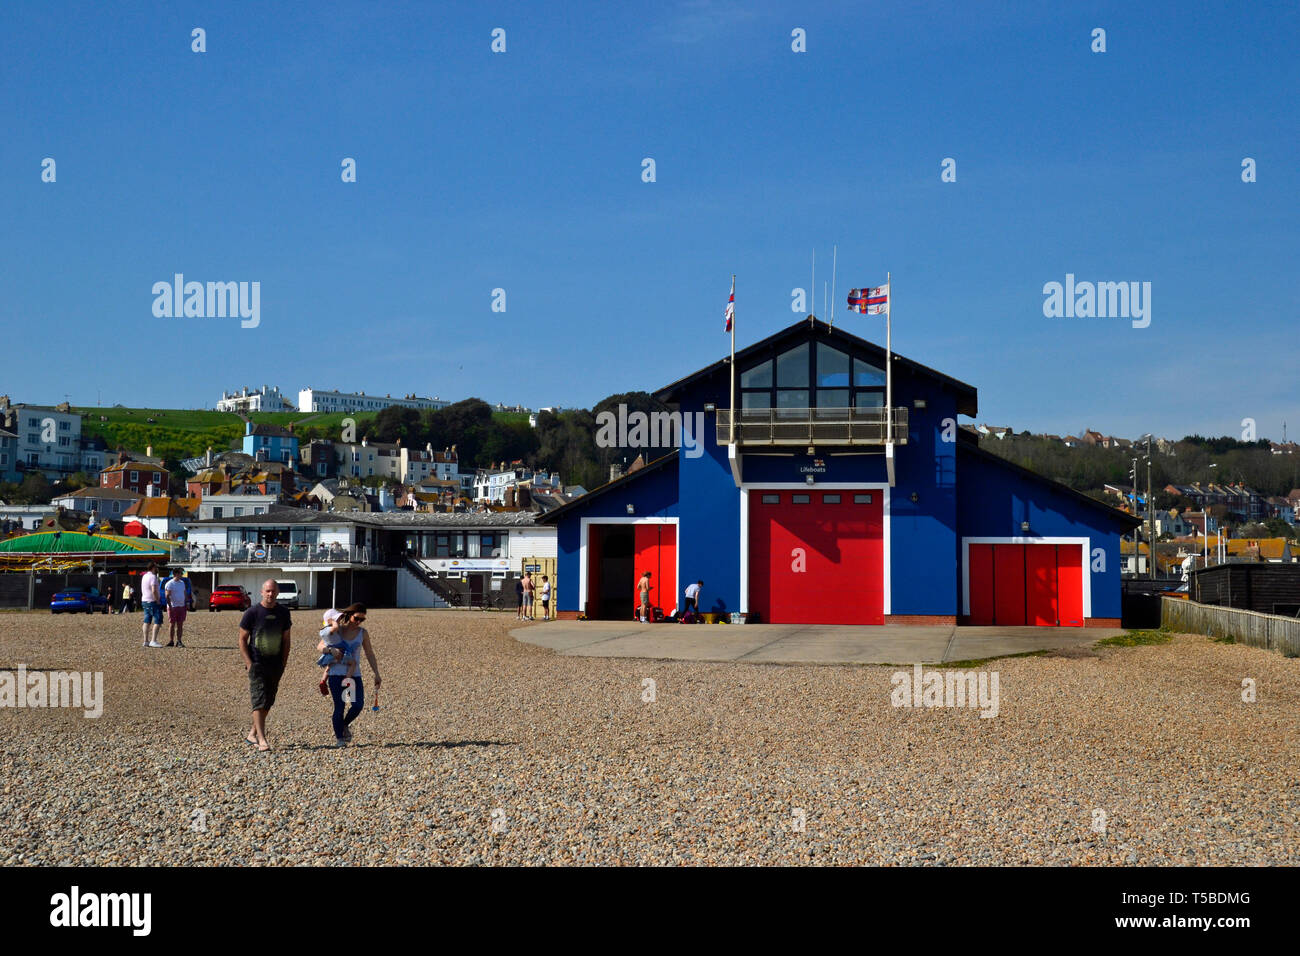 RNLI Lifeboat Station on the beach at Hastings, East Sussex, UK Stock Photo